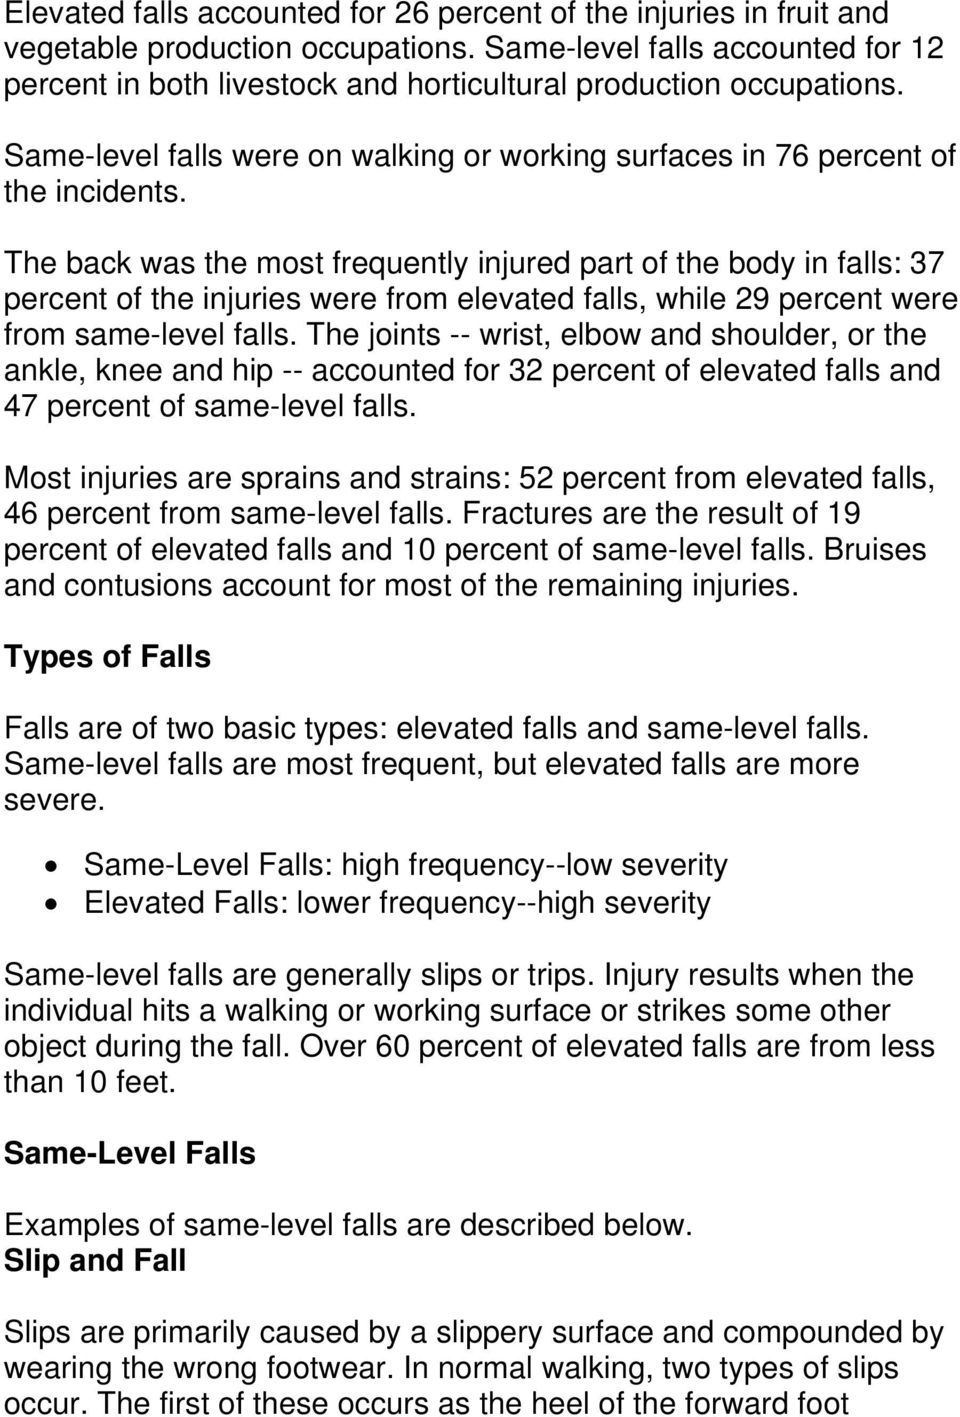 The back was the most frequently injured part of the body in falls: 37 percent of the injuries were from elevated falls, while 29 percent were from same-level falls.